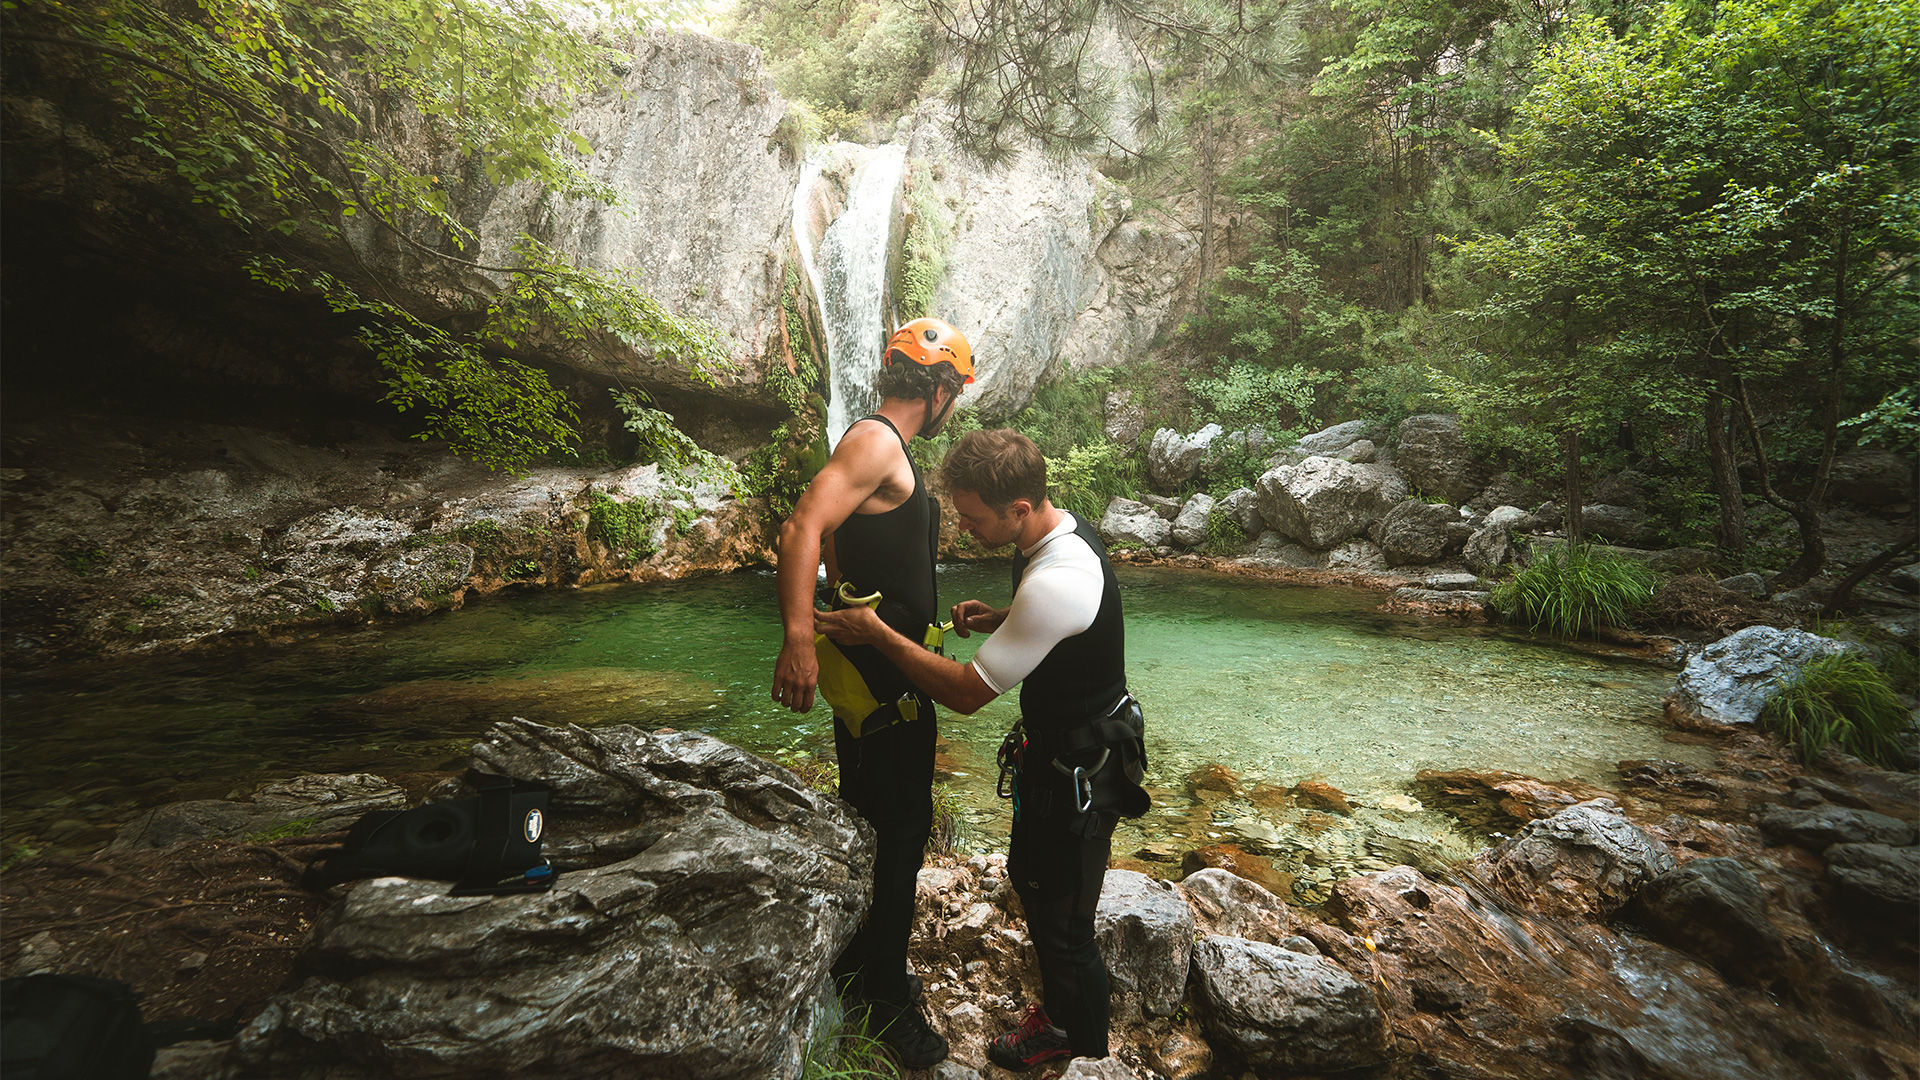 Canyoning is an experience accessible to all levels (from absolute beginner)